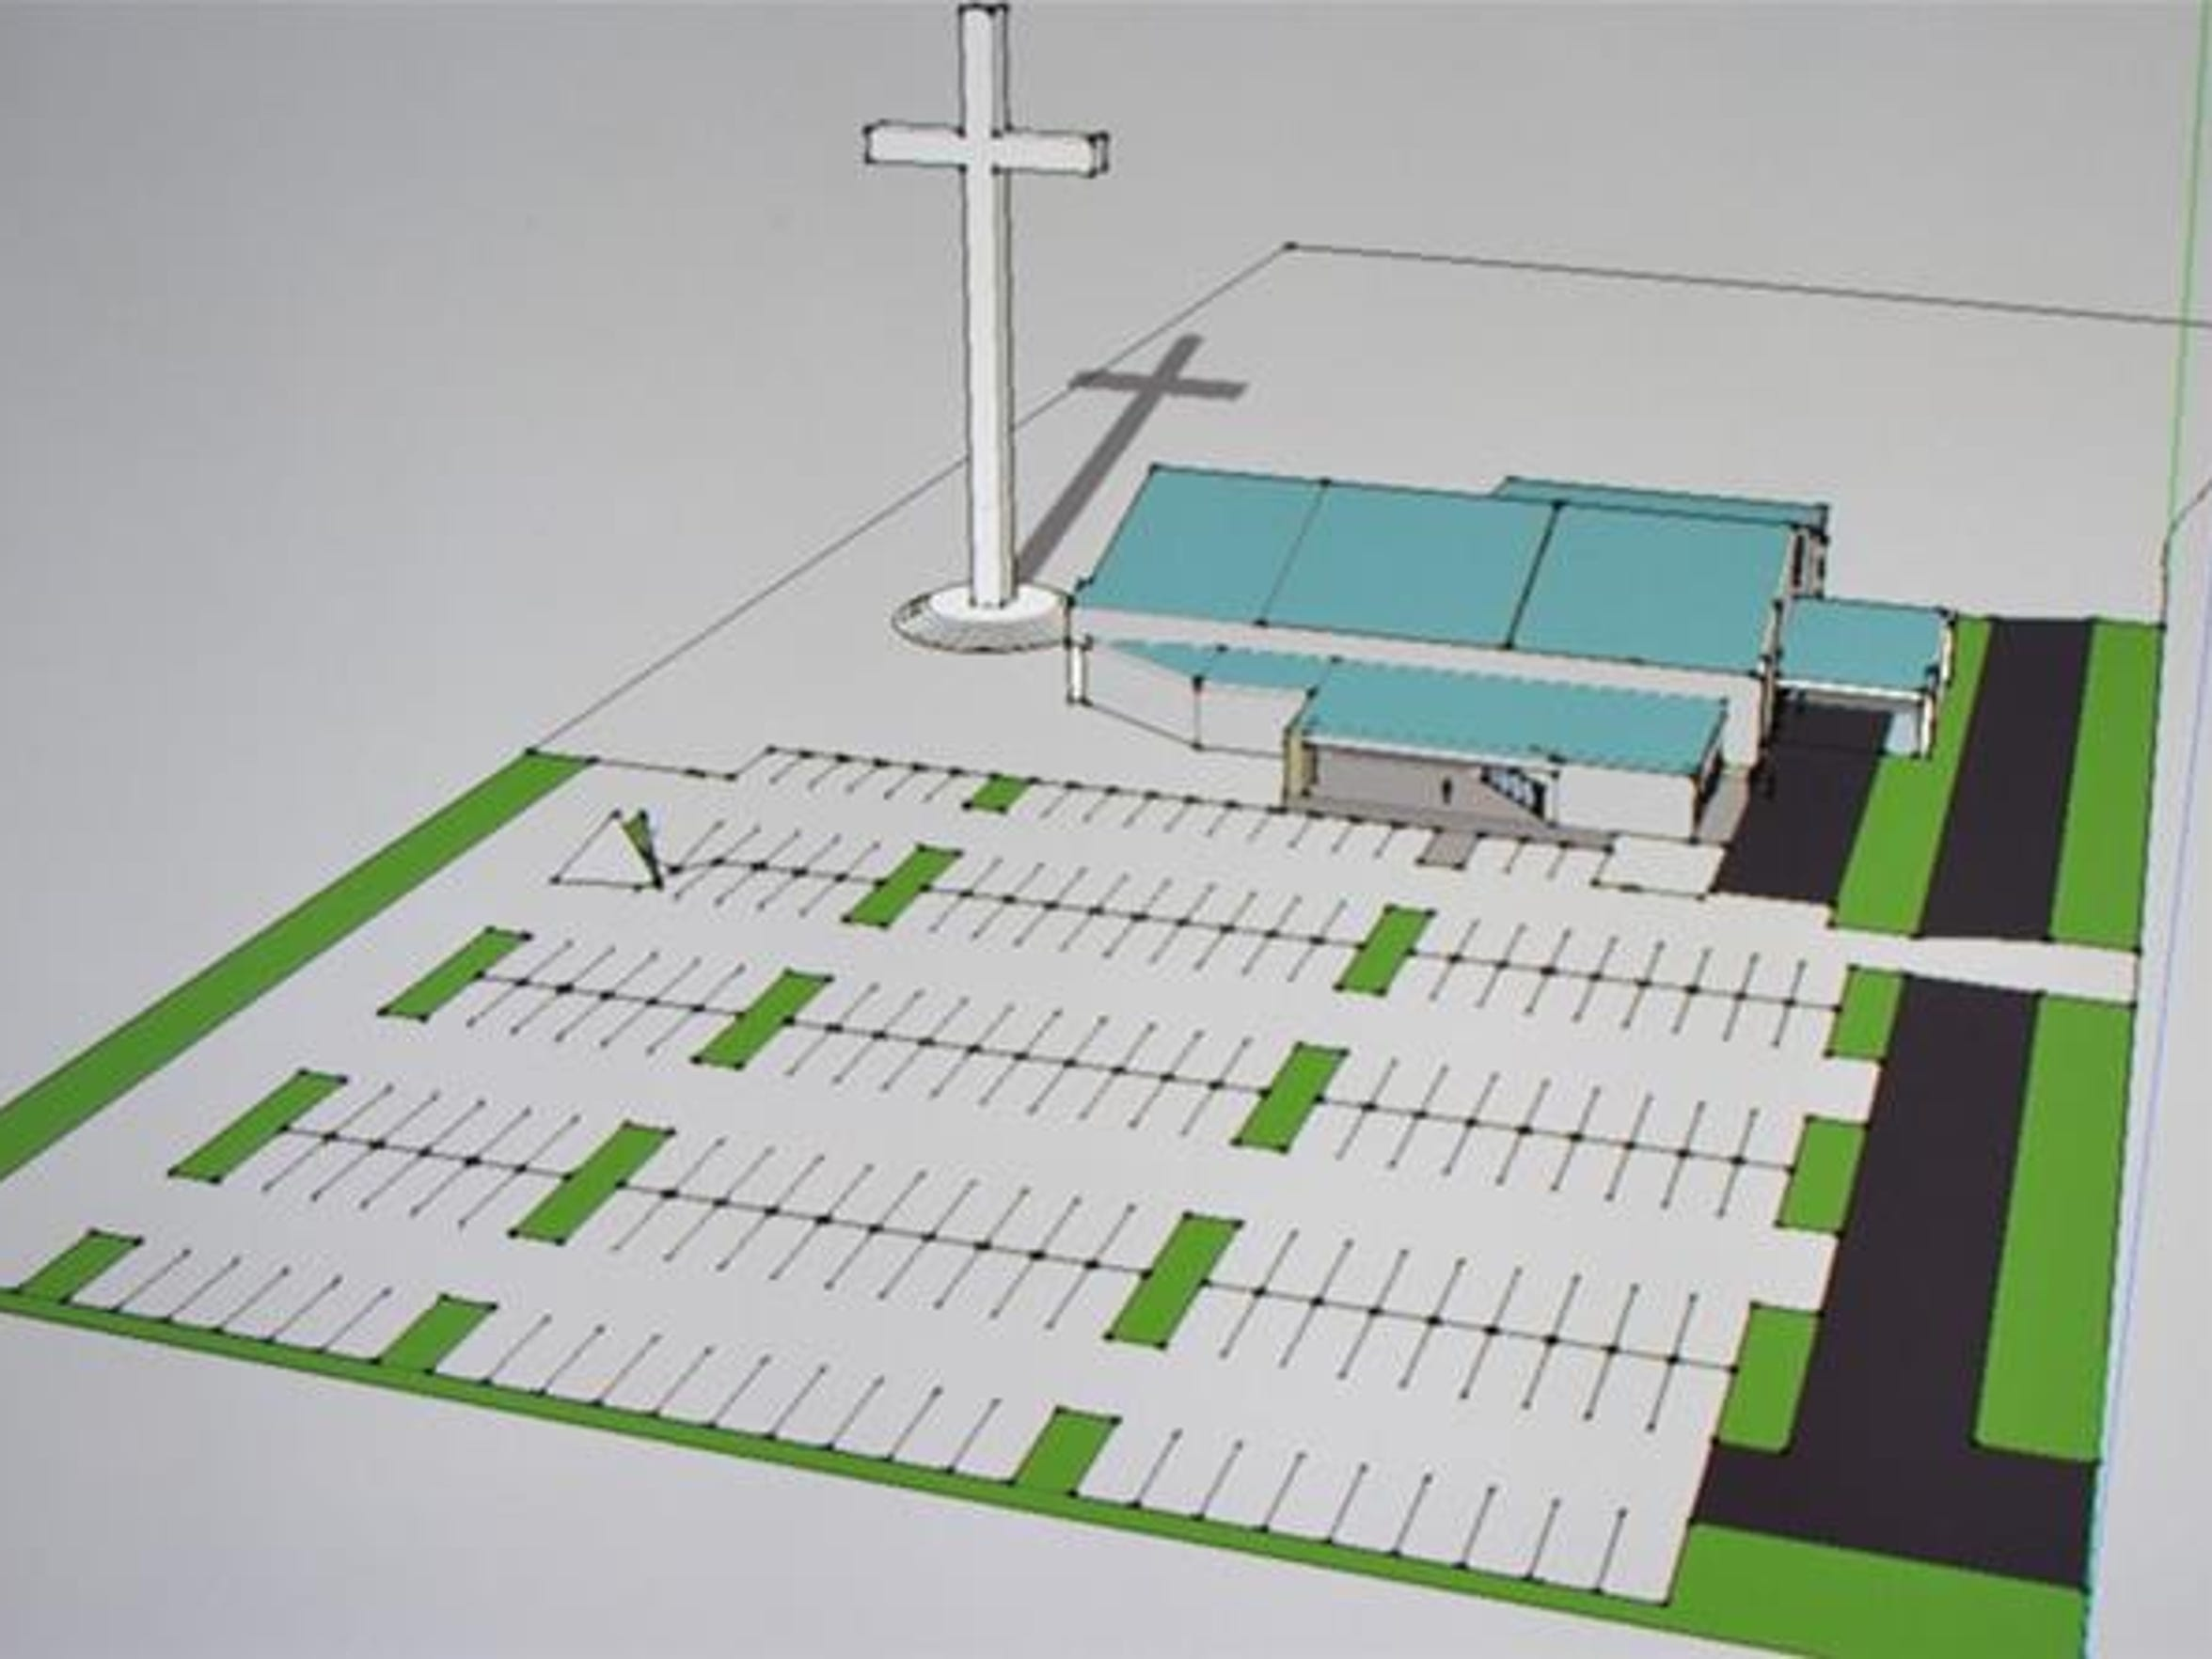 The proposed Corpus Christi Cross will stand over 200 feet tall once it is constructed along Interstate Highway 37, near Carbon Plant Road.